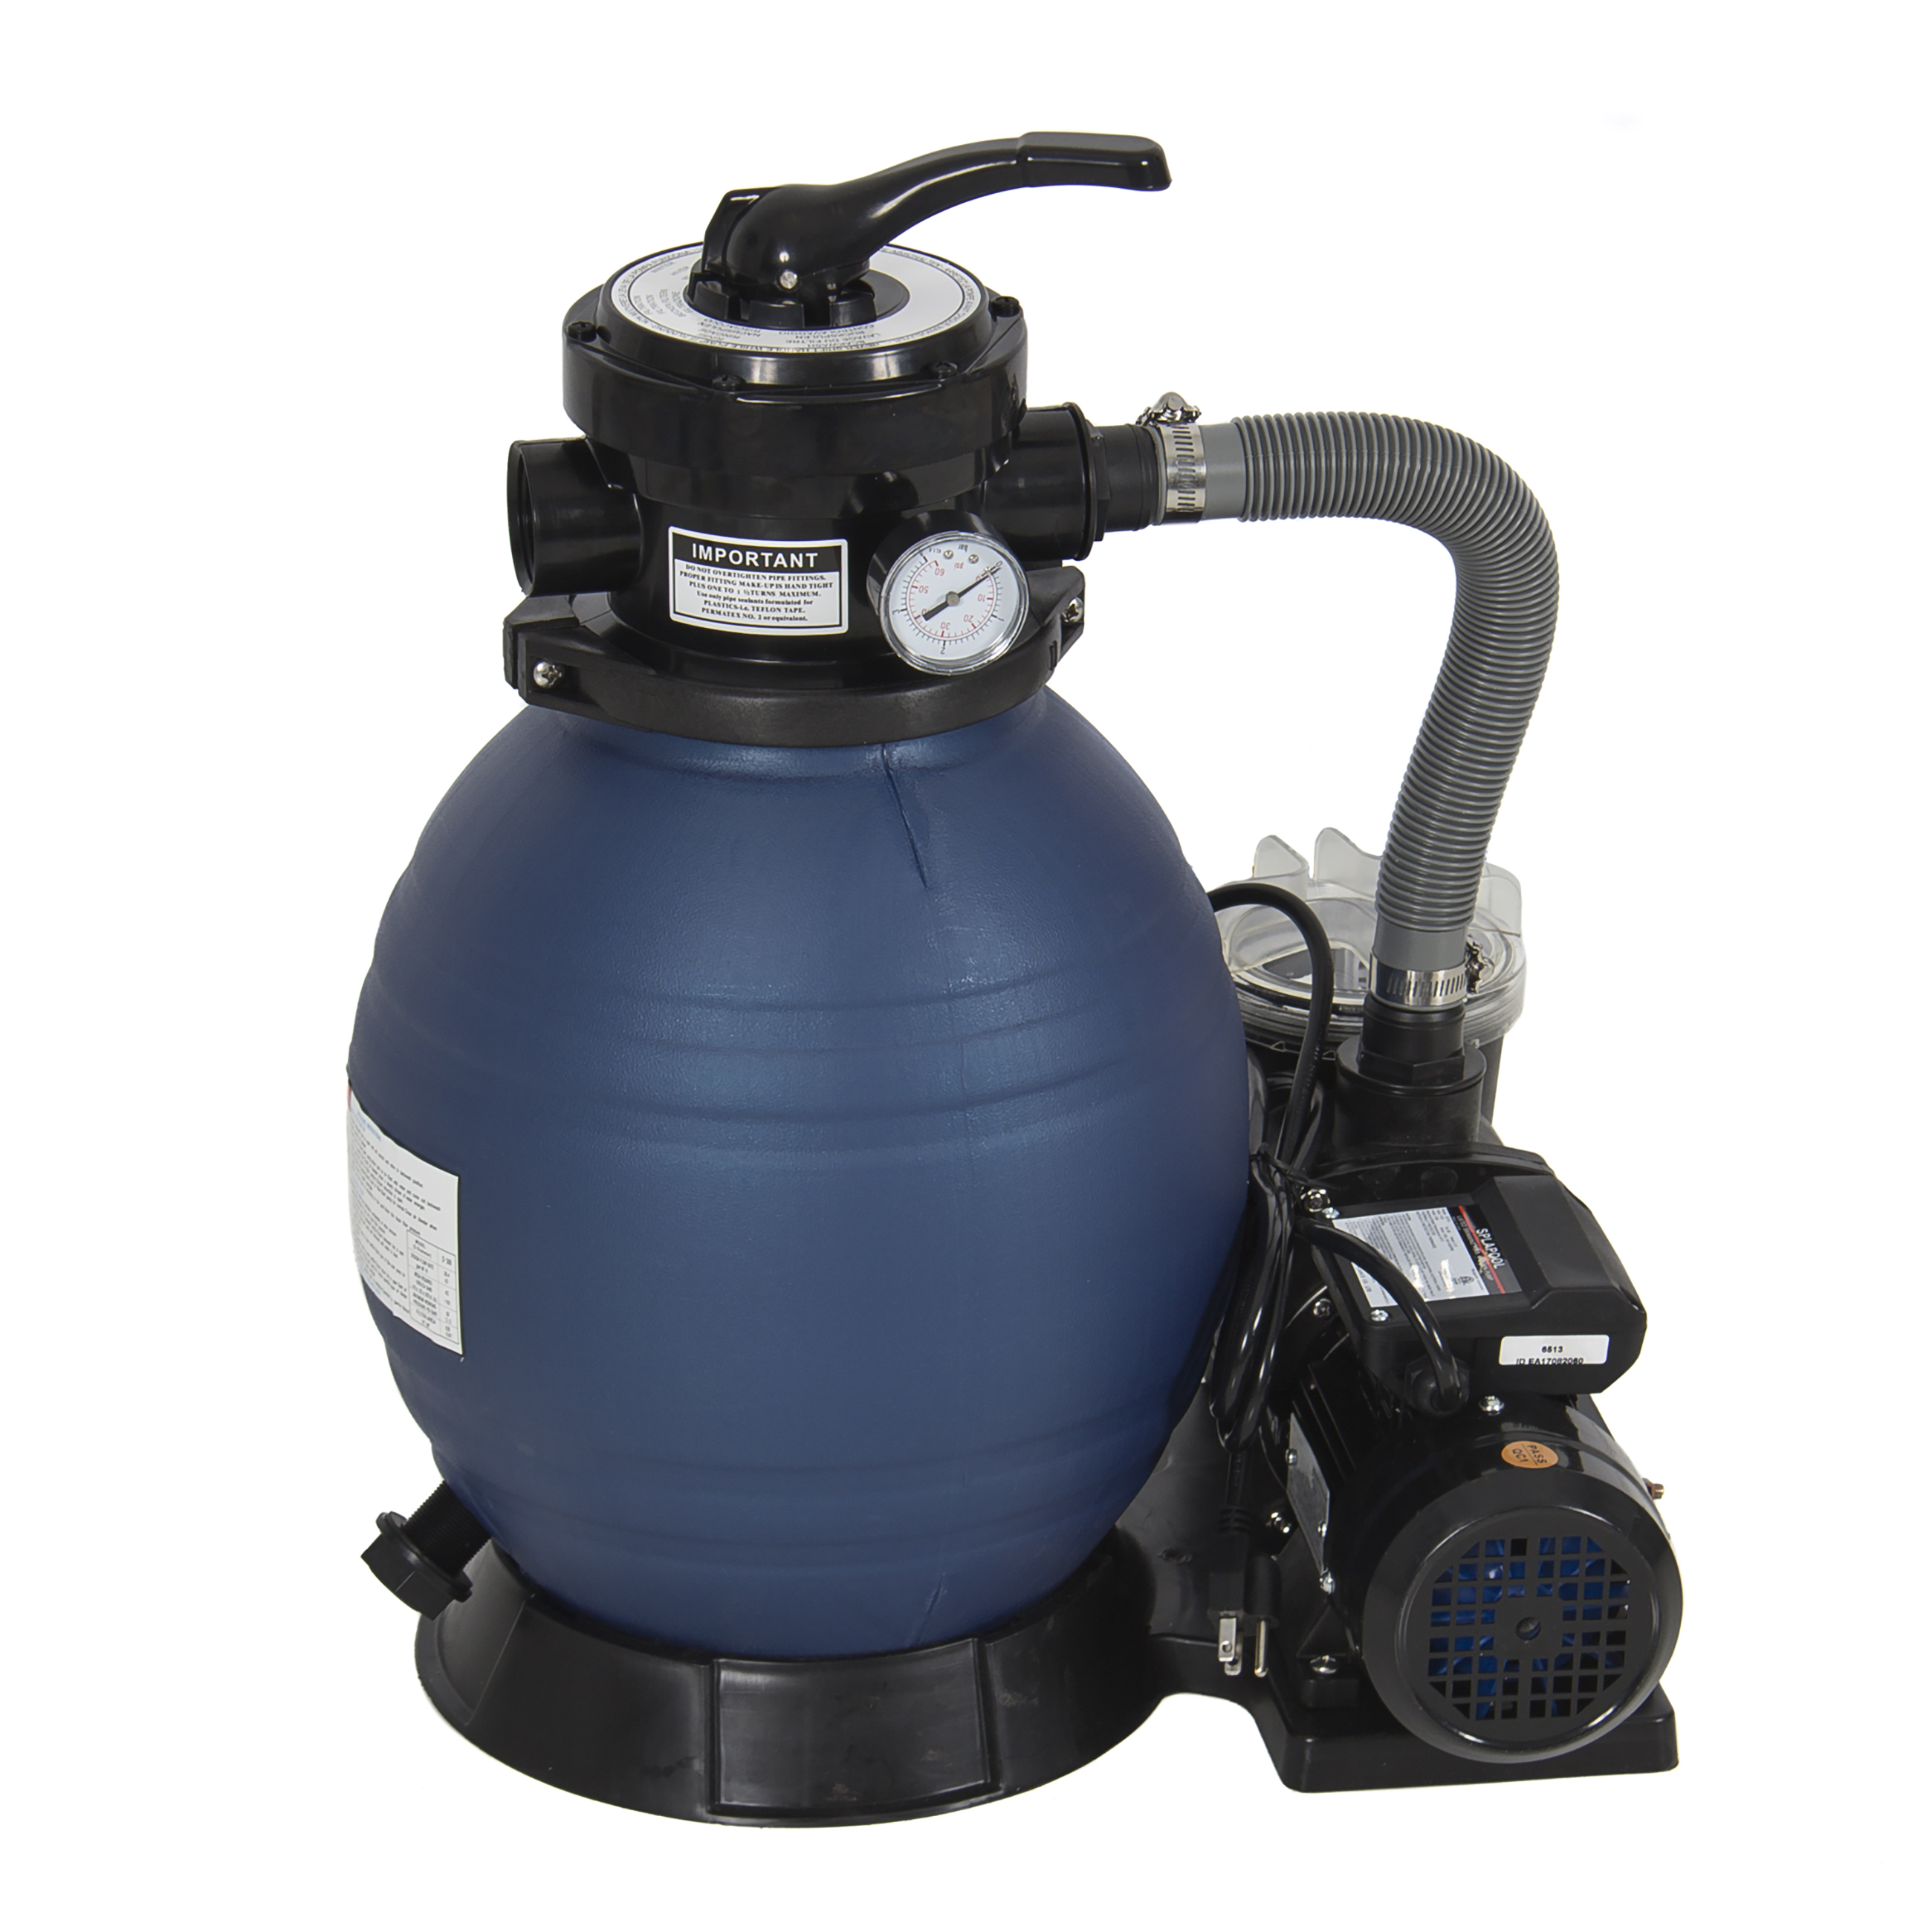 Pool Filter Pump Pressure Best Choice Products Pro 2400gph 13